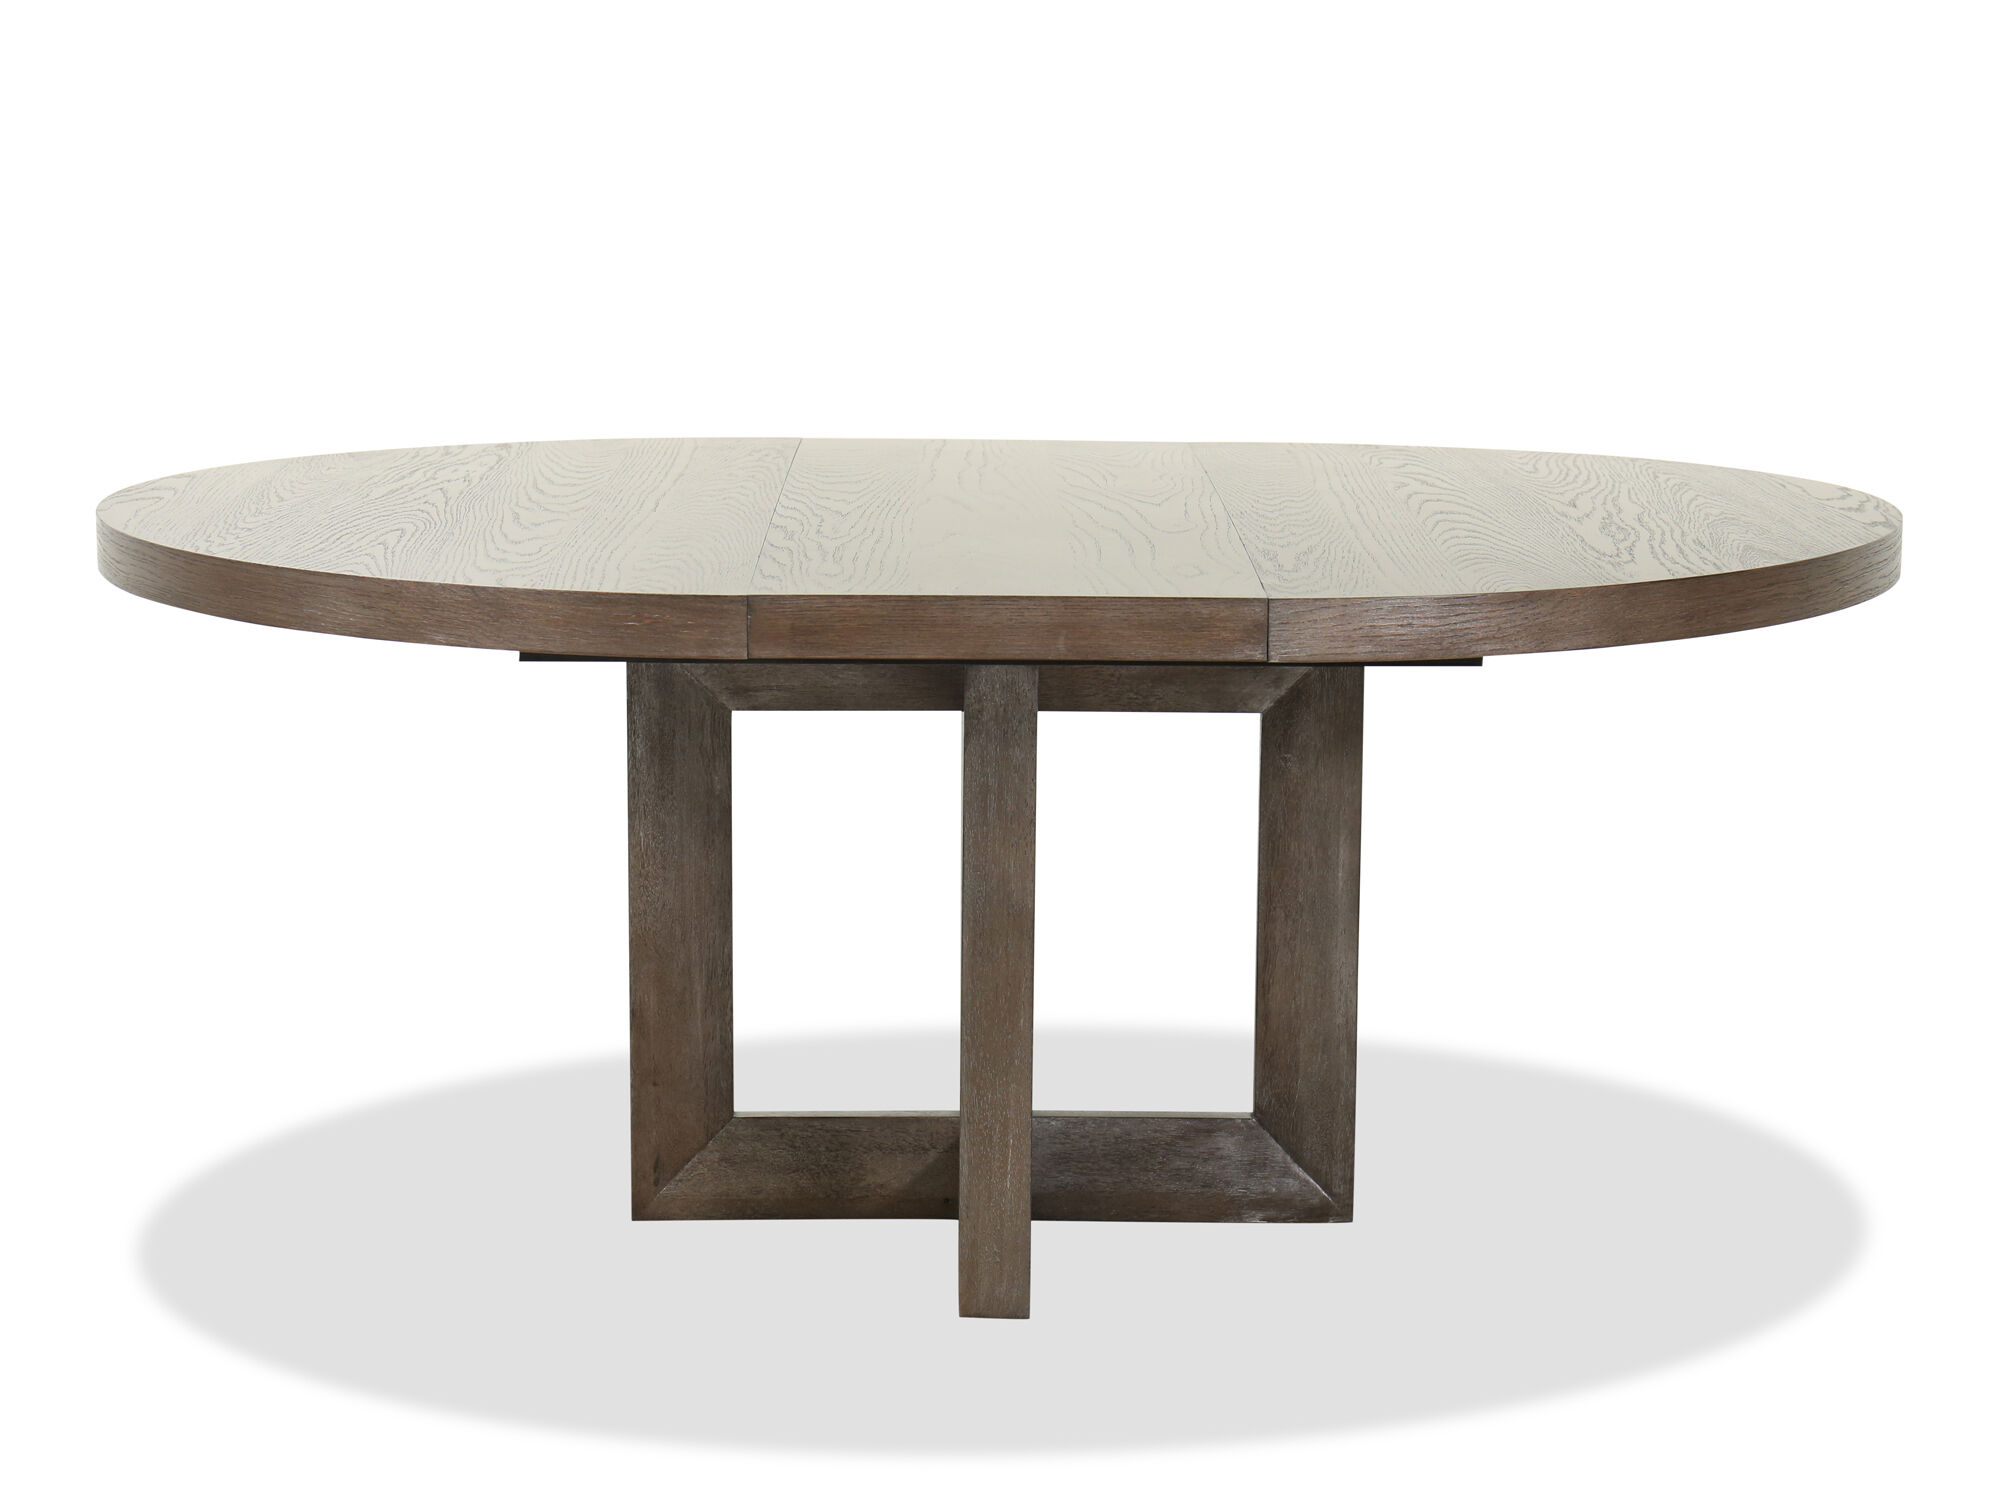 Transitional 54 To 72 Extendable Dining Table In Dark Brown Mathis Brothers Furniture